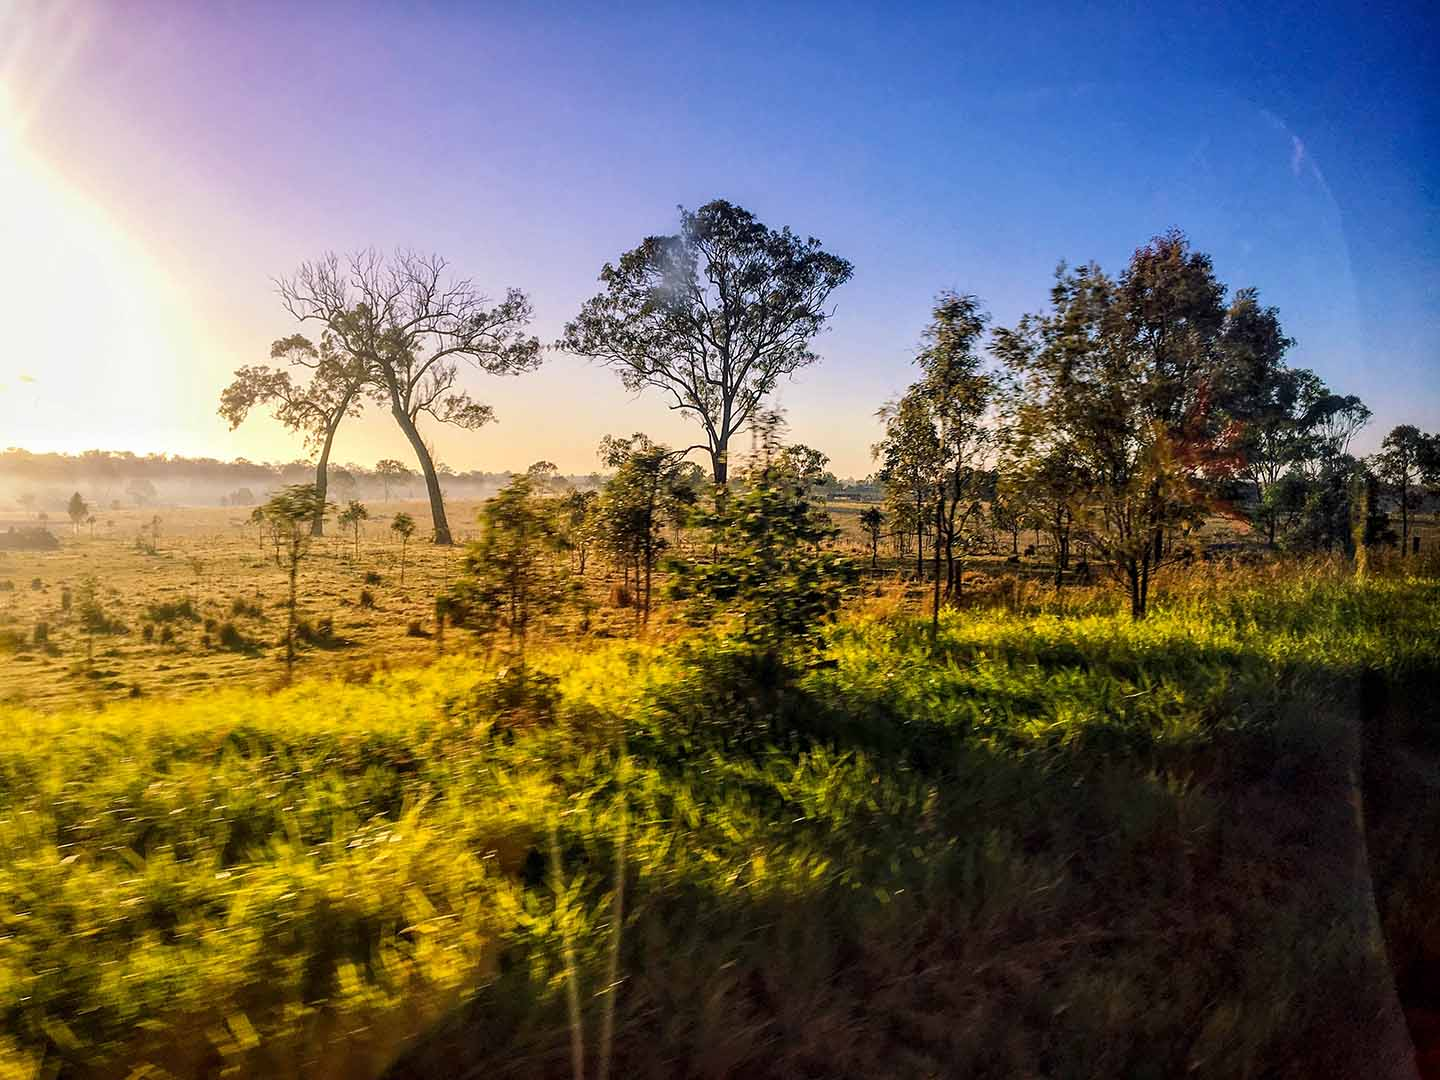 View of East Coast Australia's scenery from the bus | Image © ExpatAlli.com